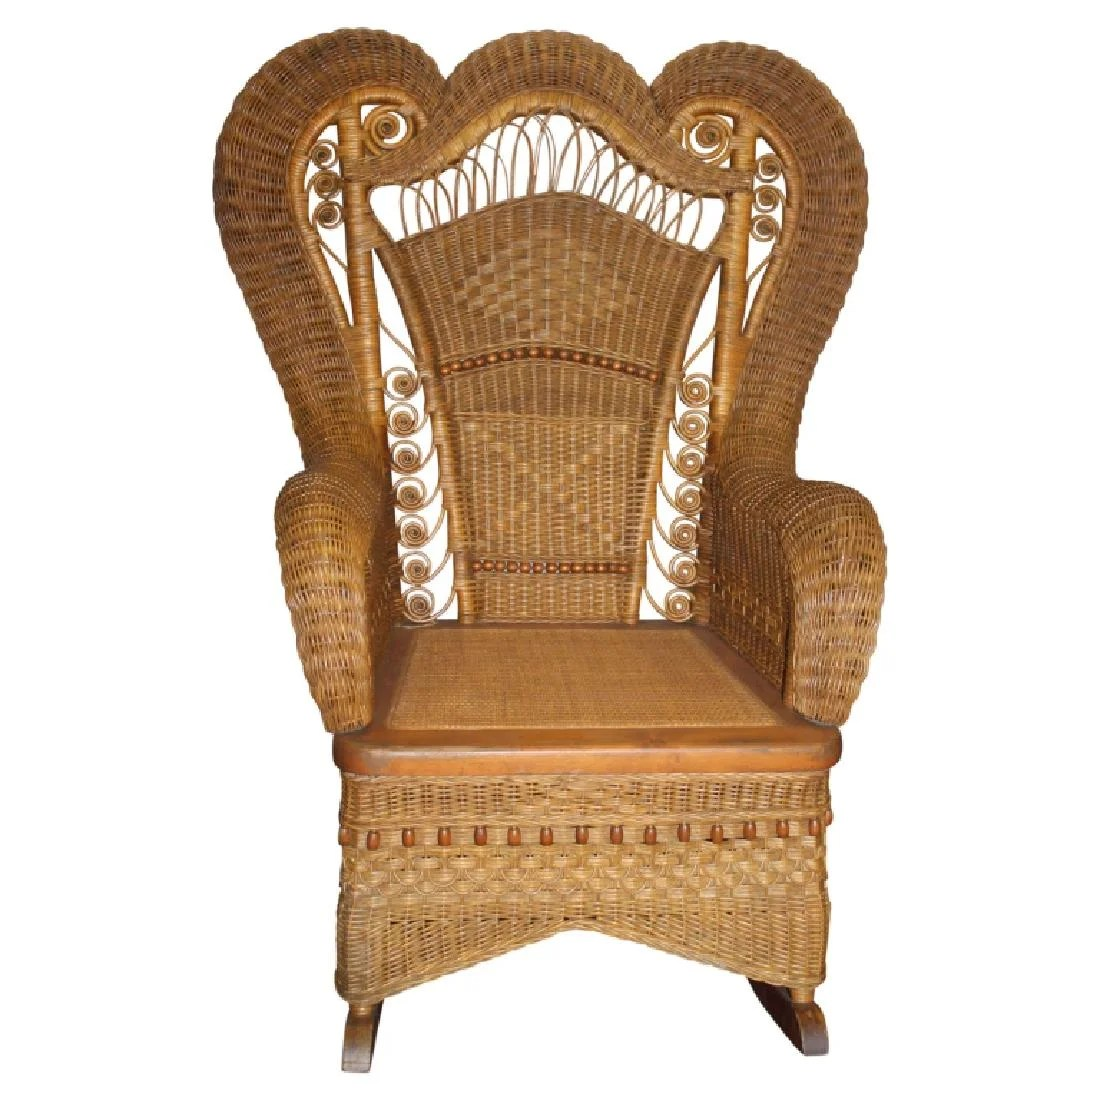 Wicker Rocking Chair Heywood Wakefield Wicker Style Rocking Chair On Liveauctioneers